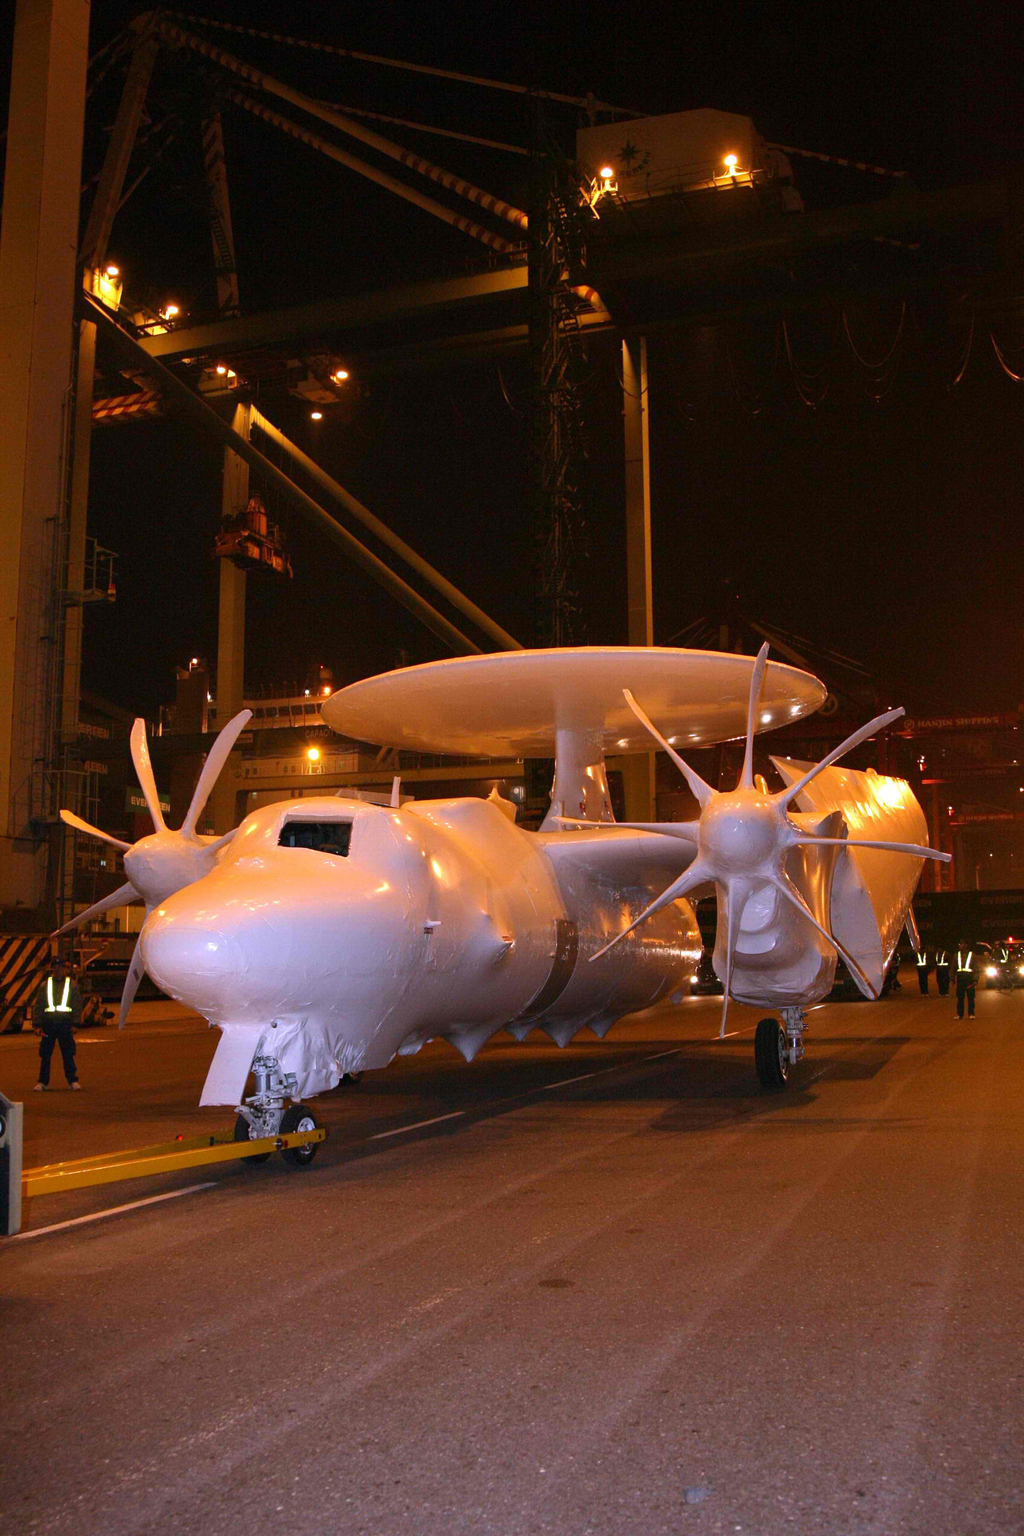 U.S.-upgraded E-2K early warning aircraft arrived in Taiwan on December 19, 2011.